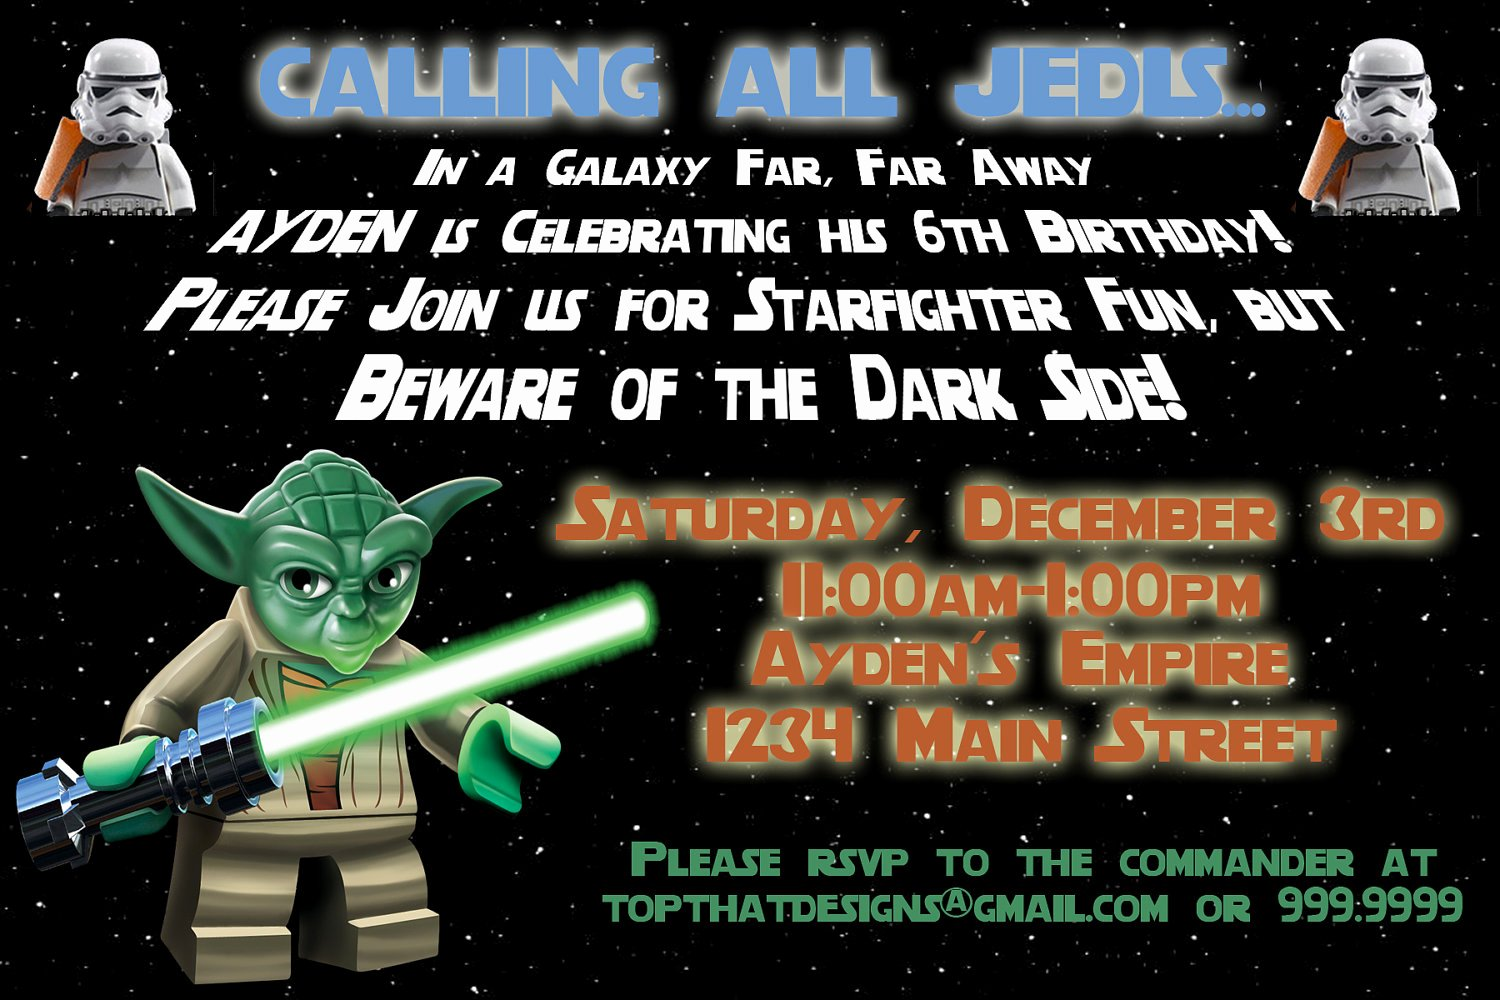 Star Wars Invitations Wording Awesome Star Wars Birthday Party Invitations